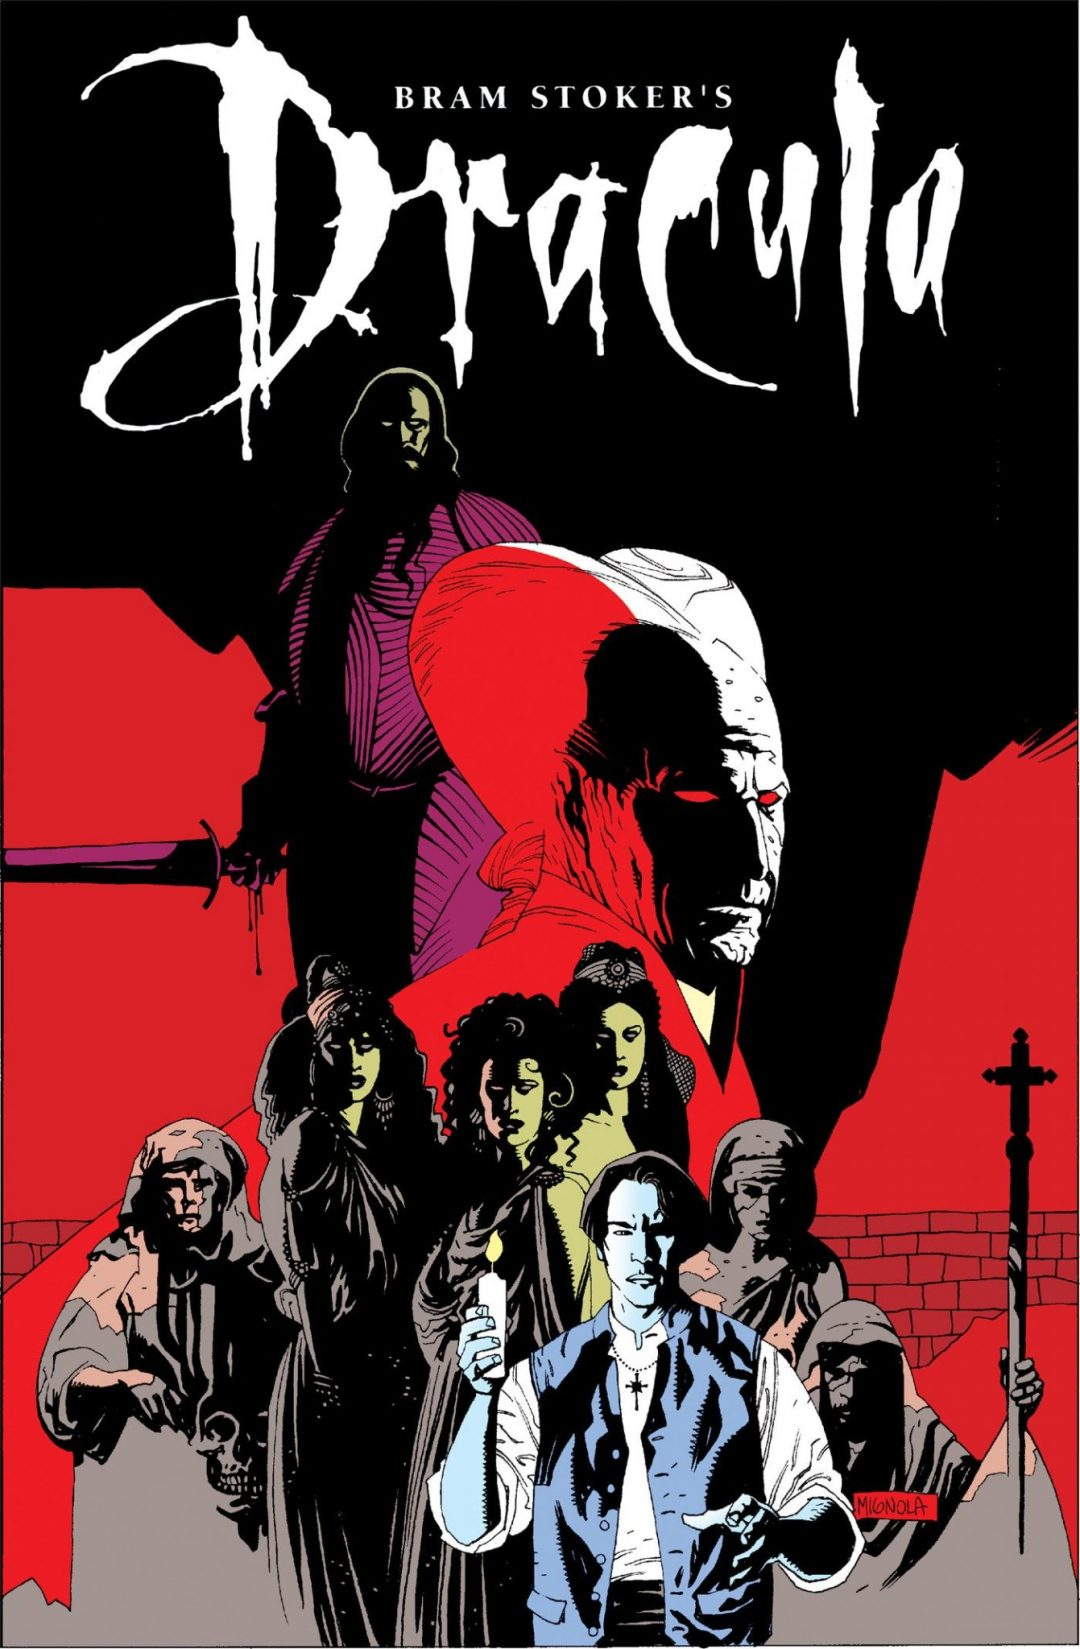 'Bram Stoker's Dracula' By Mike Mignola Returns to Print!